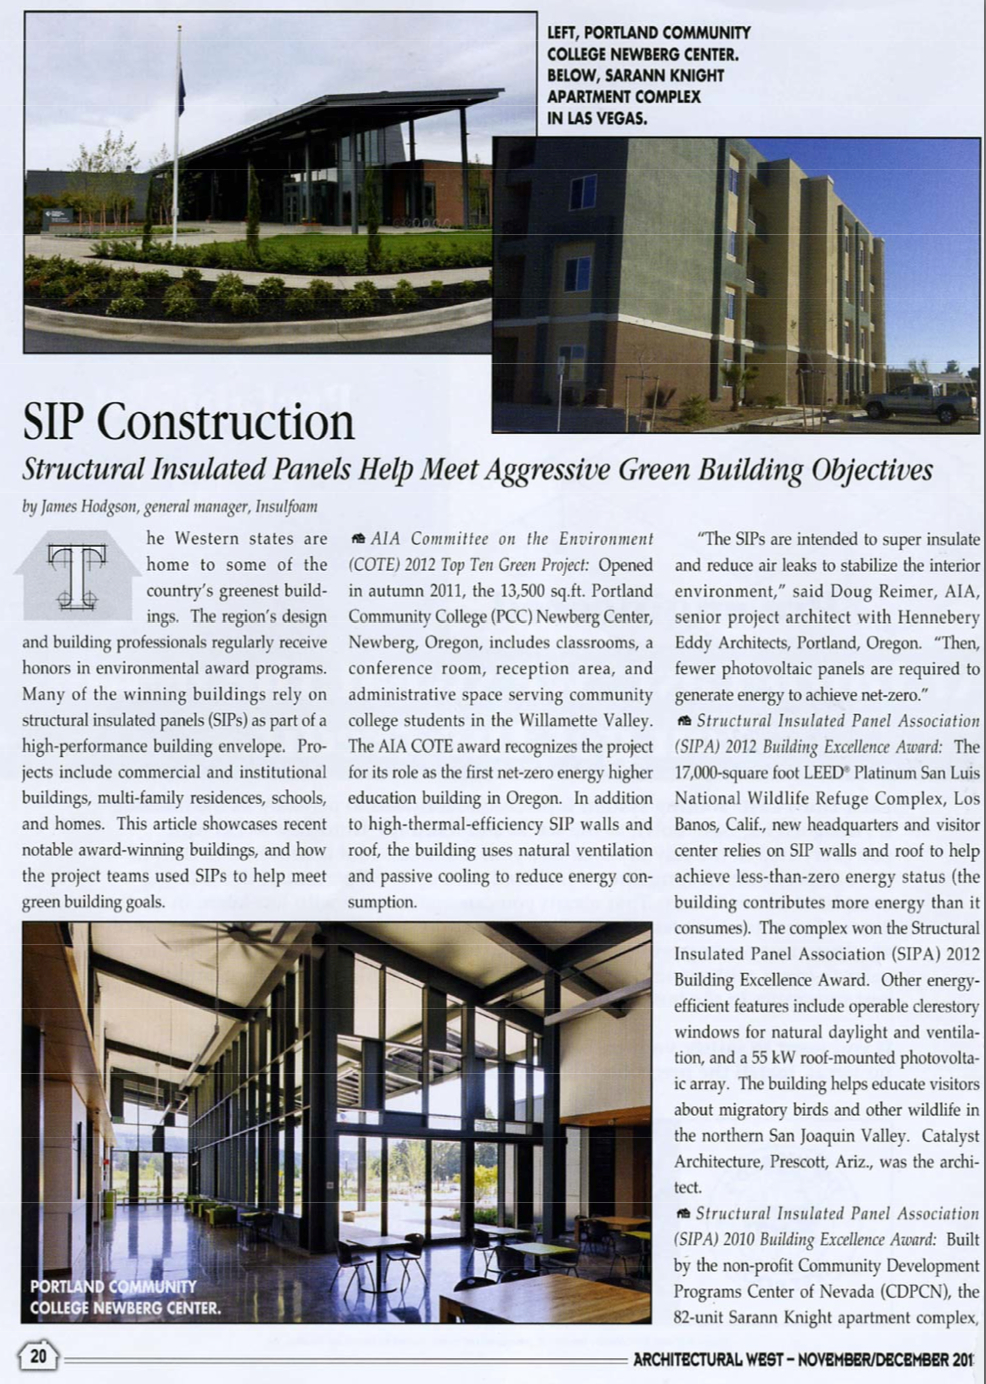 Green Building Awards Premier Sips Structural Insulated